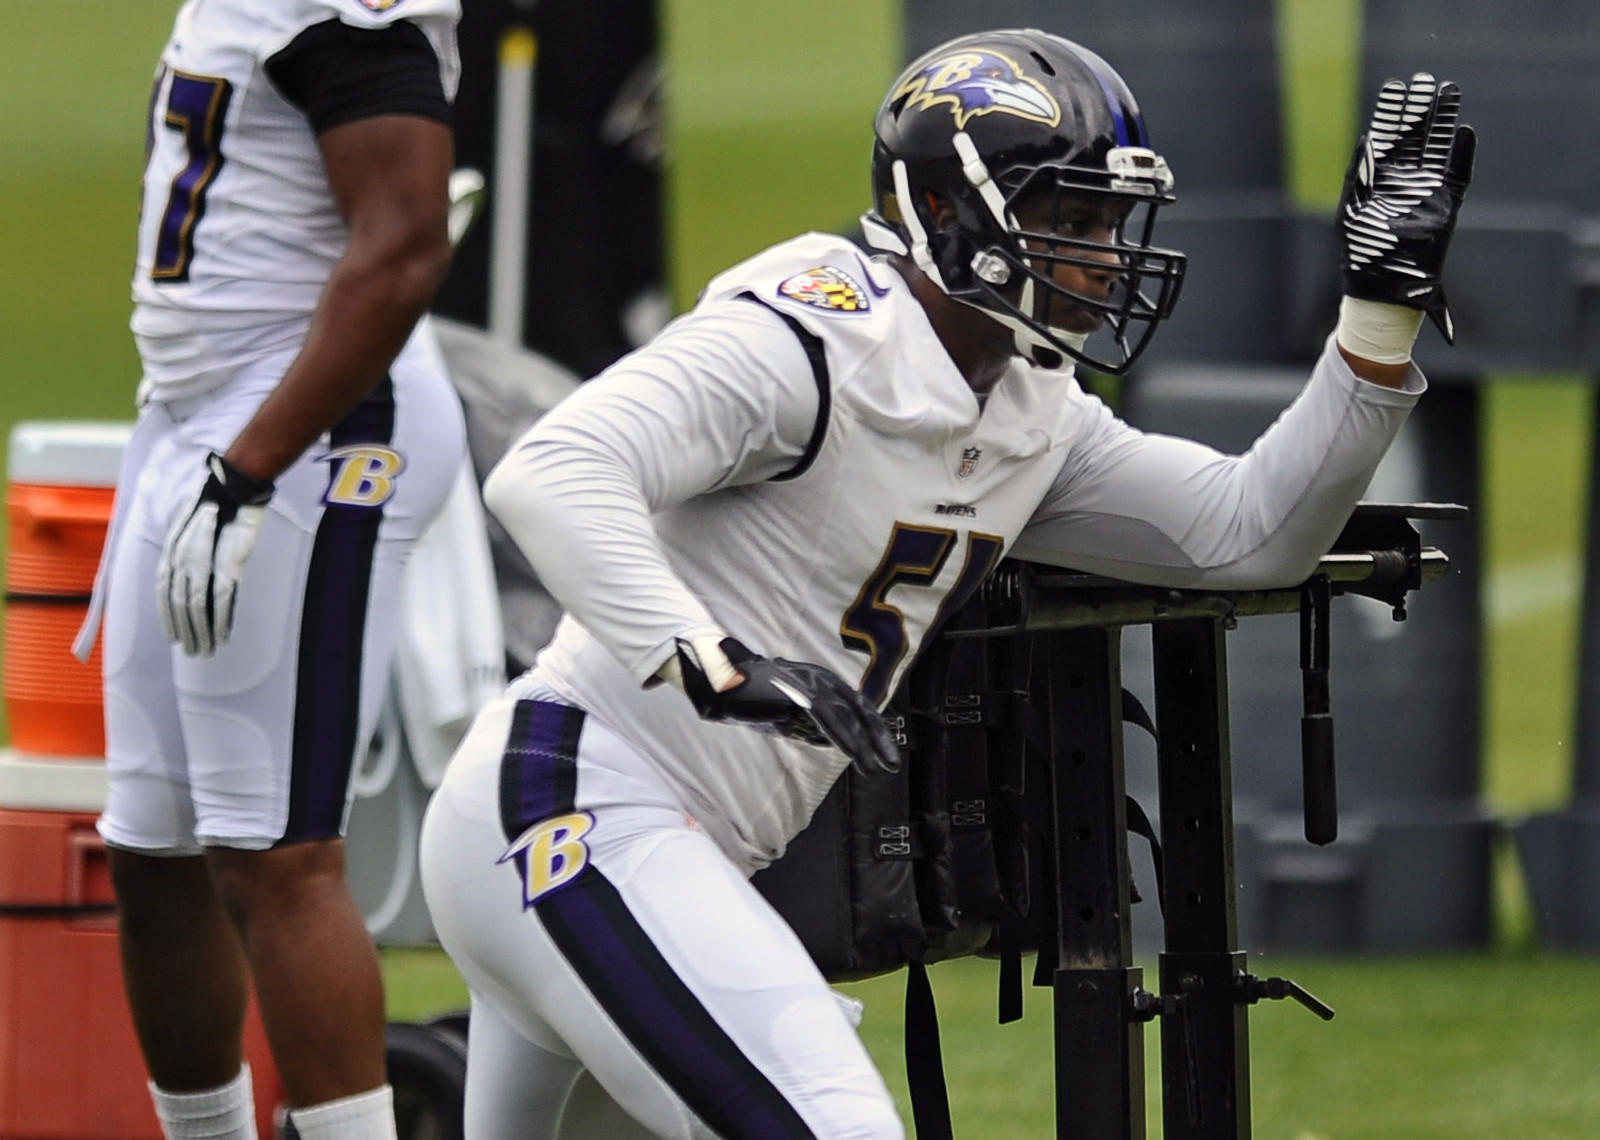 Ravens linebacker Daryl Smith works out on the last day of mandatory minicamp in June.